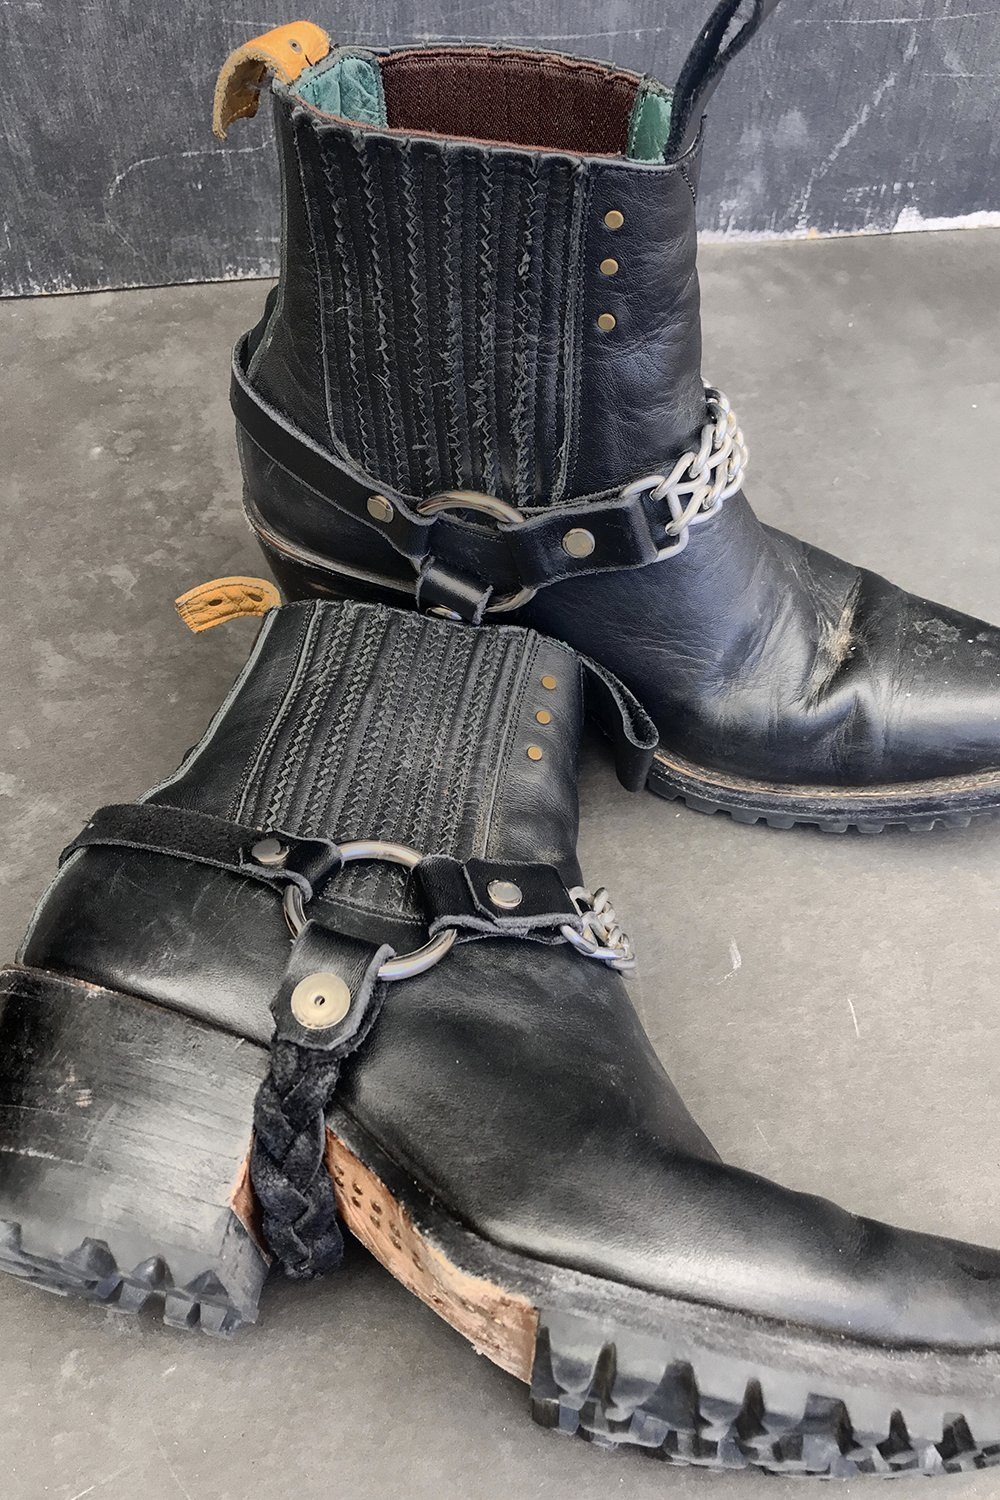 Black Leather Chain Boot Straps by Hell Bent Leather, Accessories, Hell Bent Leather